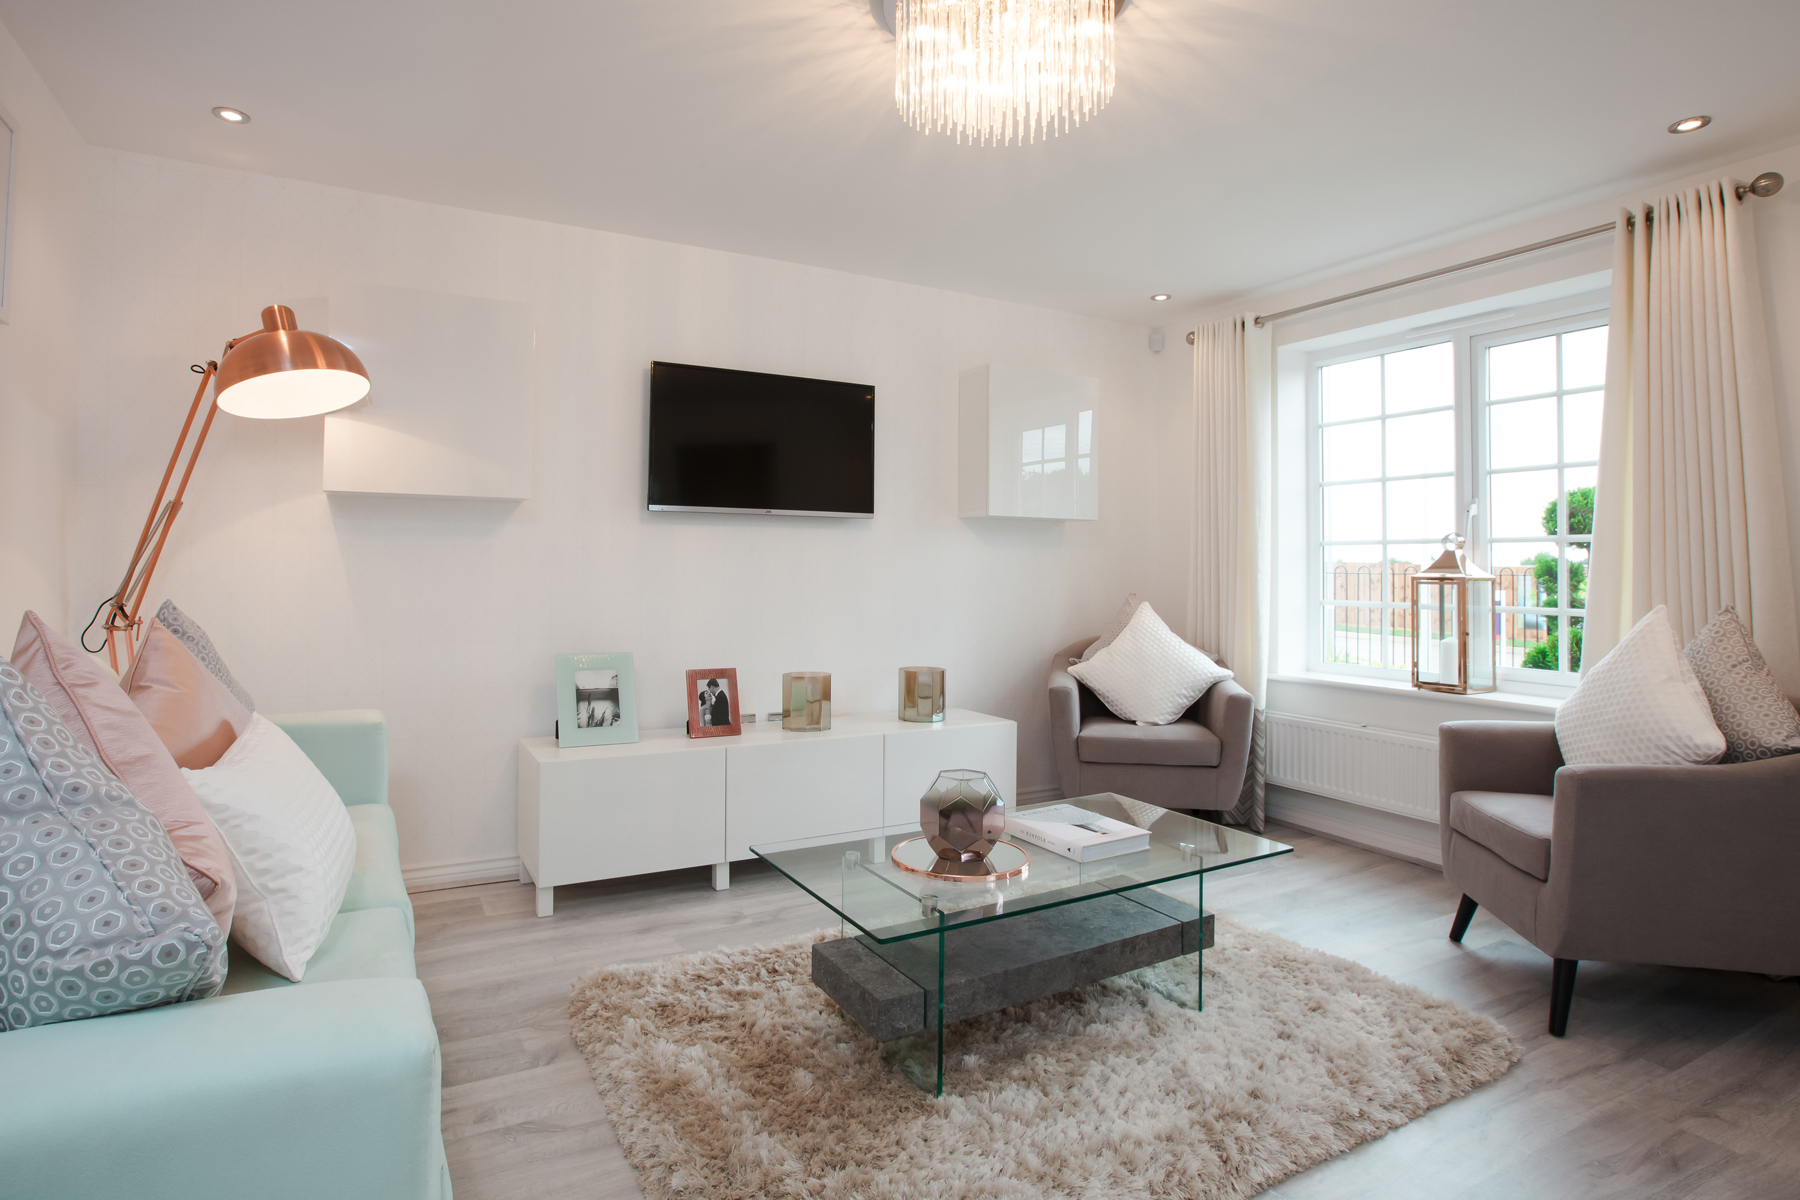 TW Exeter - Buckingham Heights - Gosford example living room 2